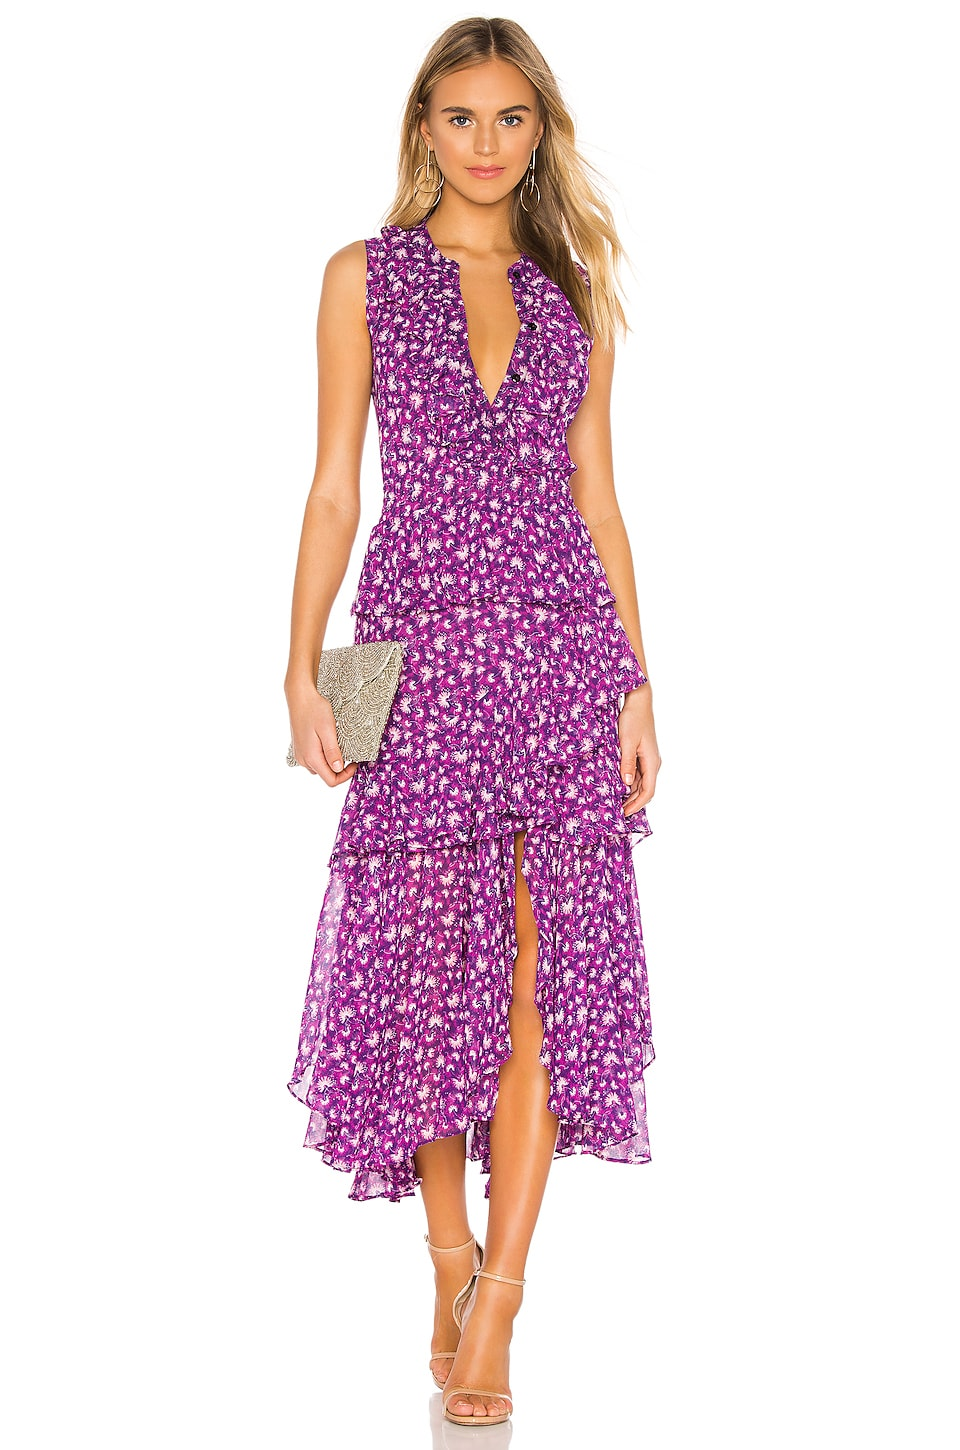 Ilona Dress                   MISA Los Angeles                                                                                                                             CA$ 483.87 1